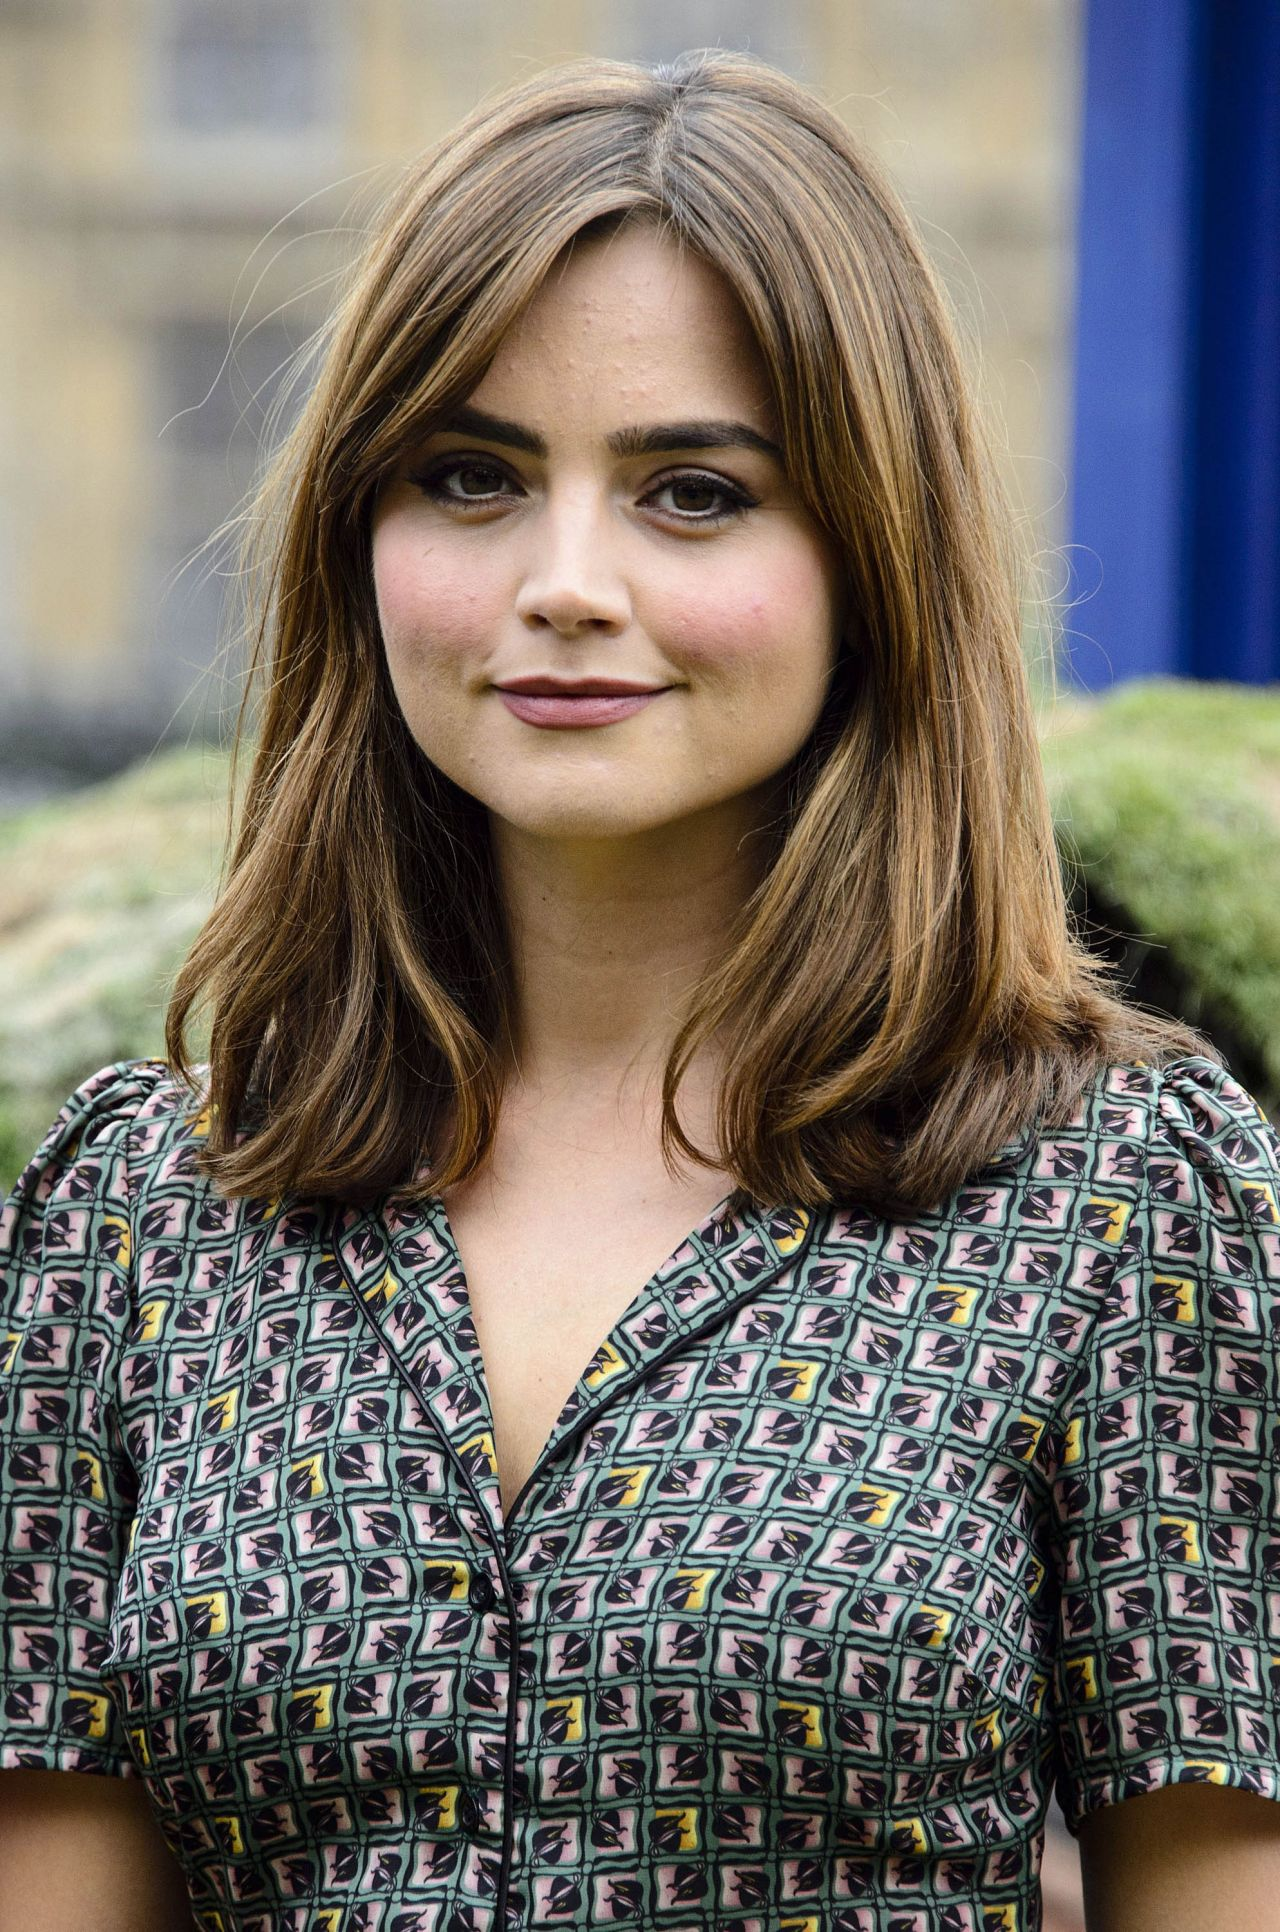 Photos Jenna-Louise Coleman nudes (43 foto and video), Tits, Fappening, Boobs, panties 2020